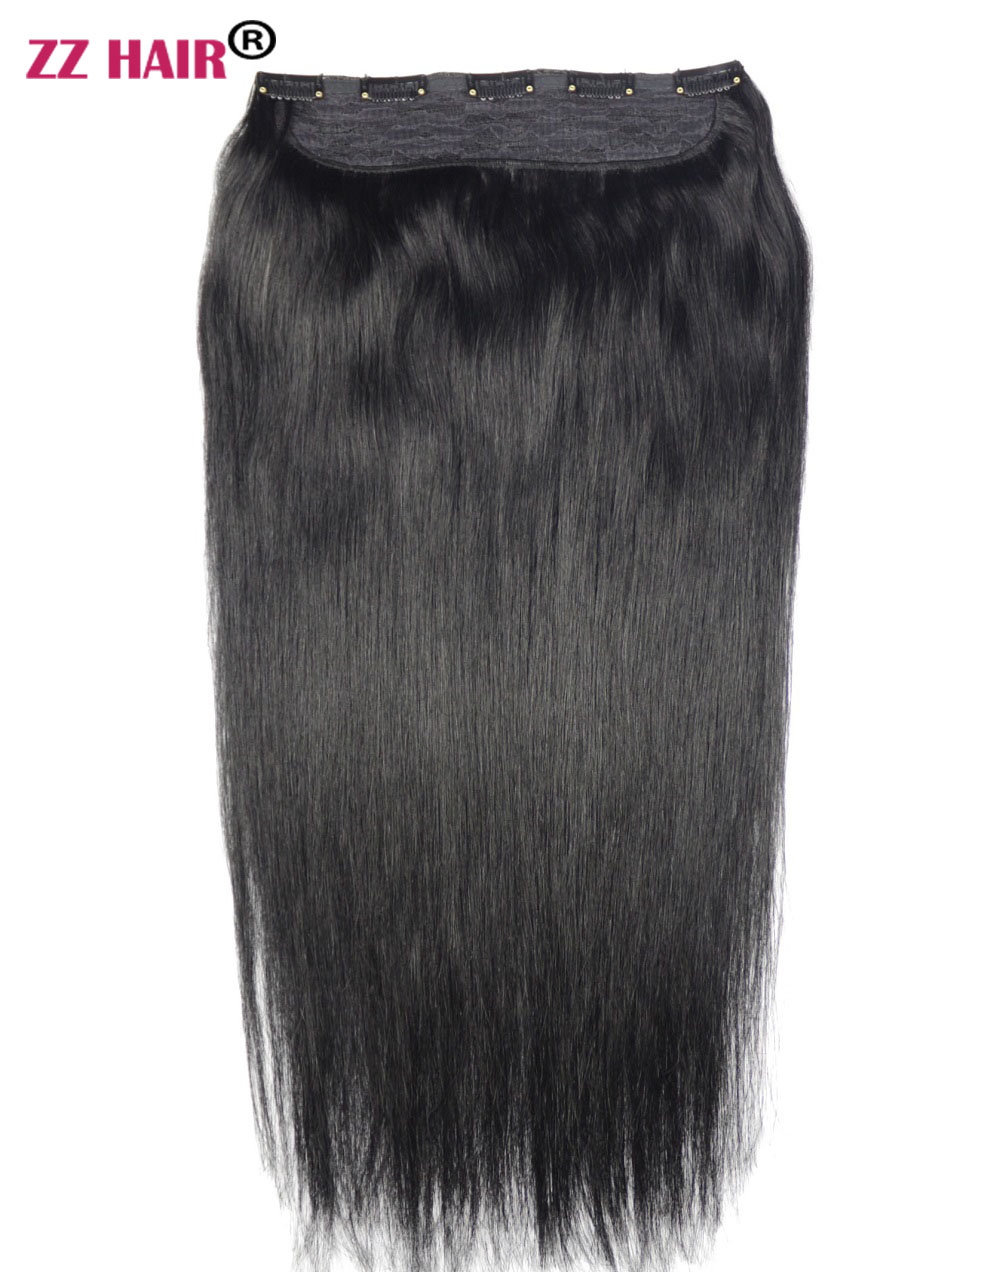 ZZHAIR 150g 16 28 Non remy Hair One piece Set 5 Clip in Human Hair Extensions